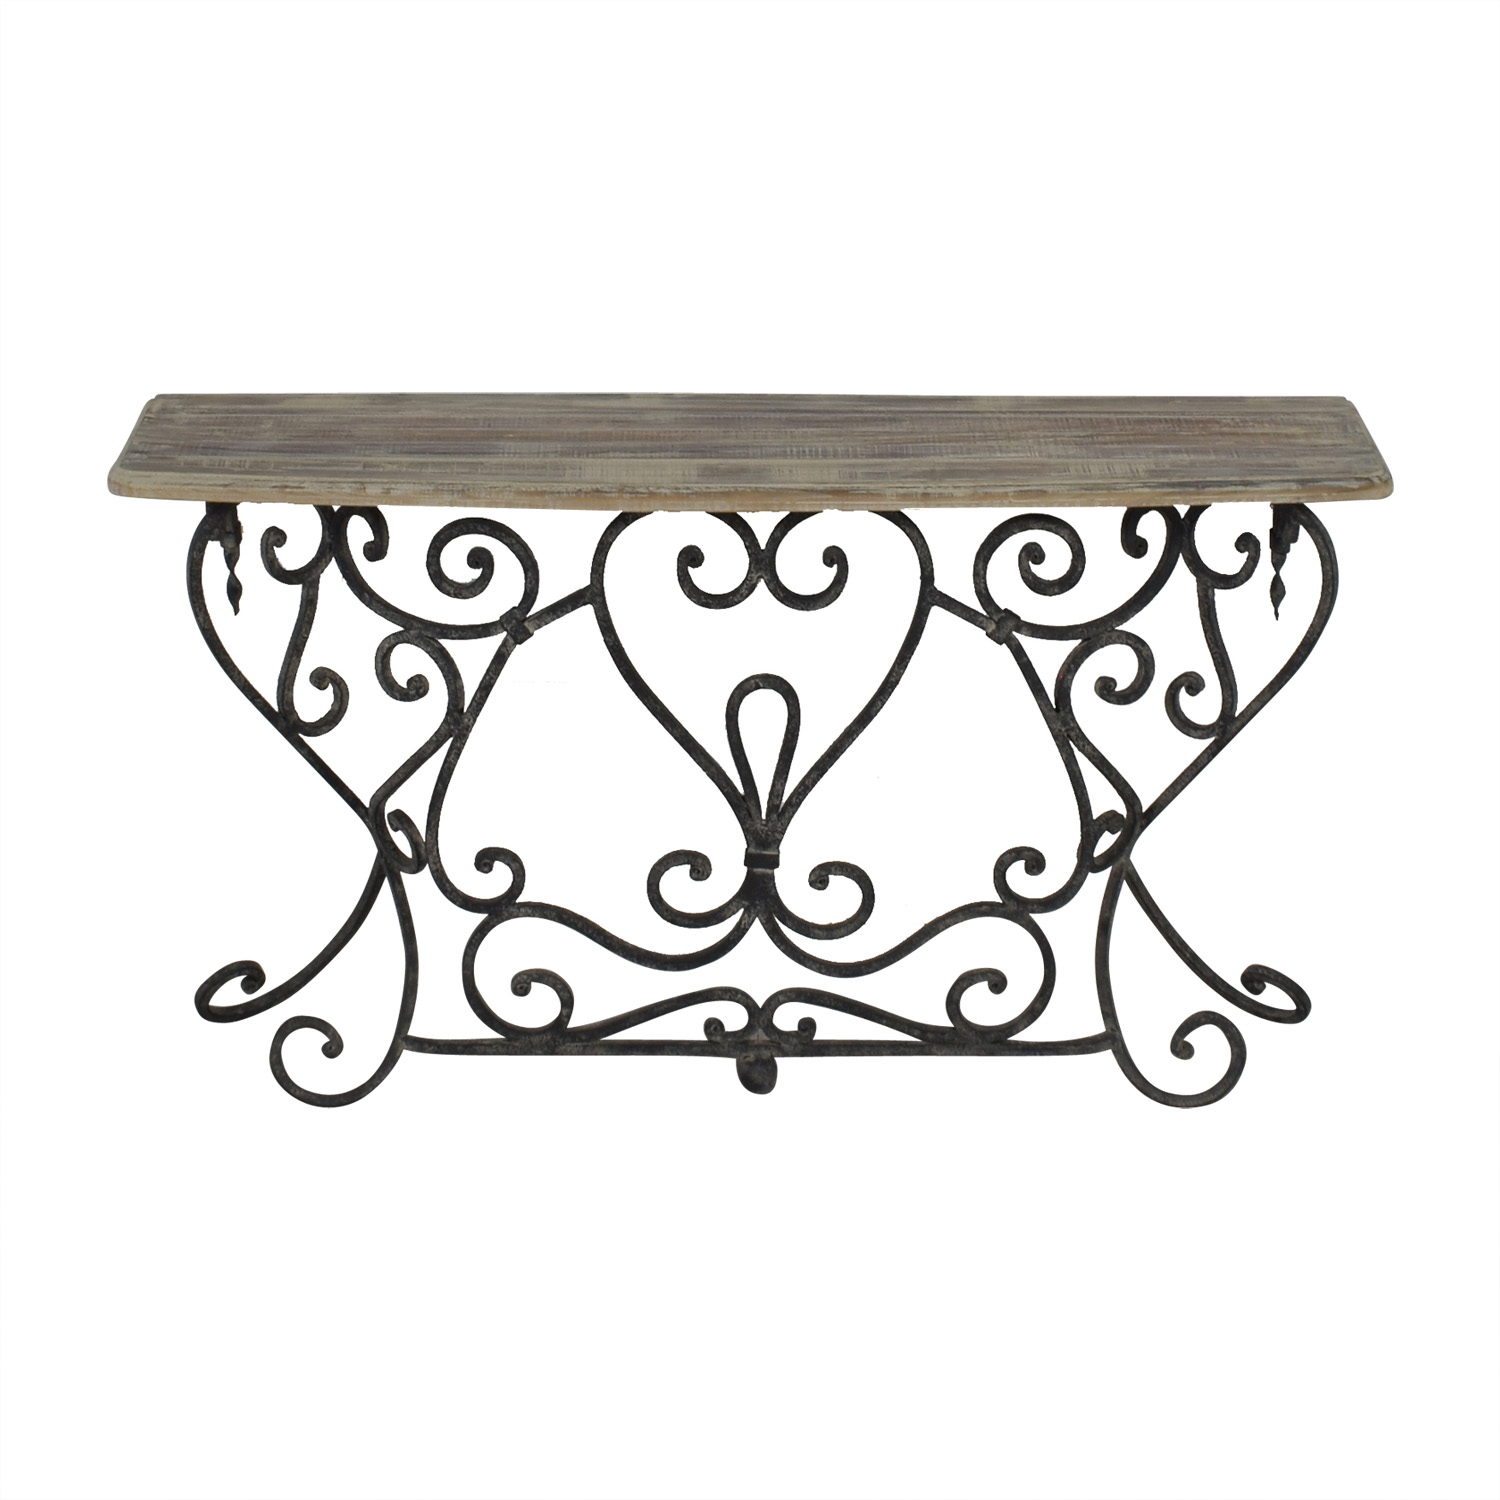 Wrought Iron Console Table grey